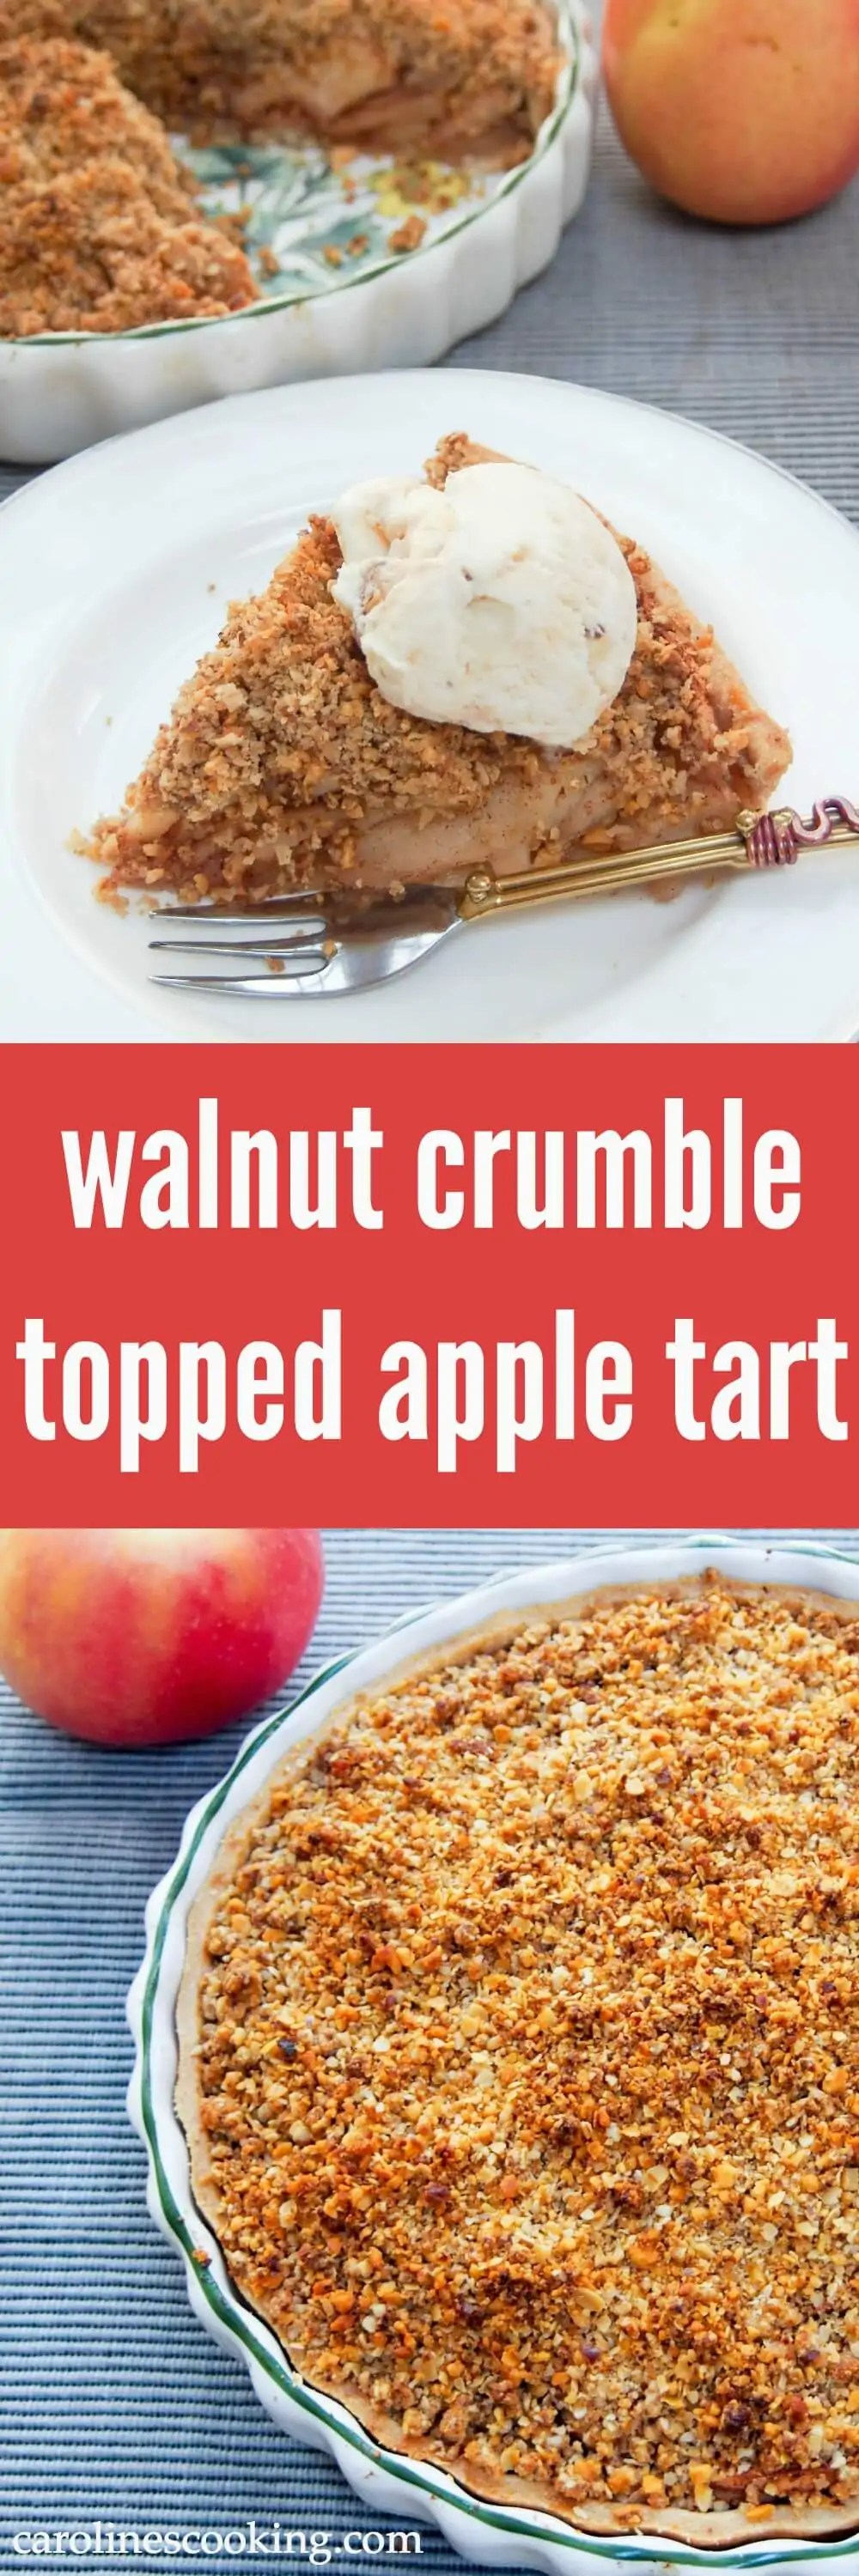 This walnut crumble topped apple tart has a delicious combination of soft cinnamony apples and crunchy, nutty topping. It's as well it's relatively healthy, as you'll be back for another slice. Fall flavors / dessert